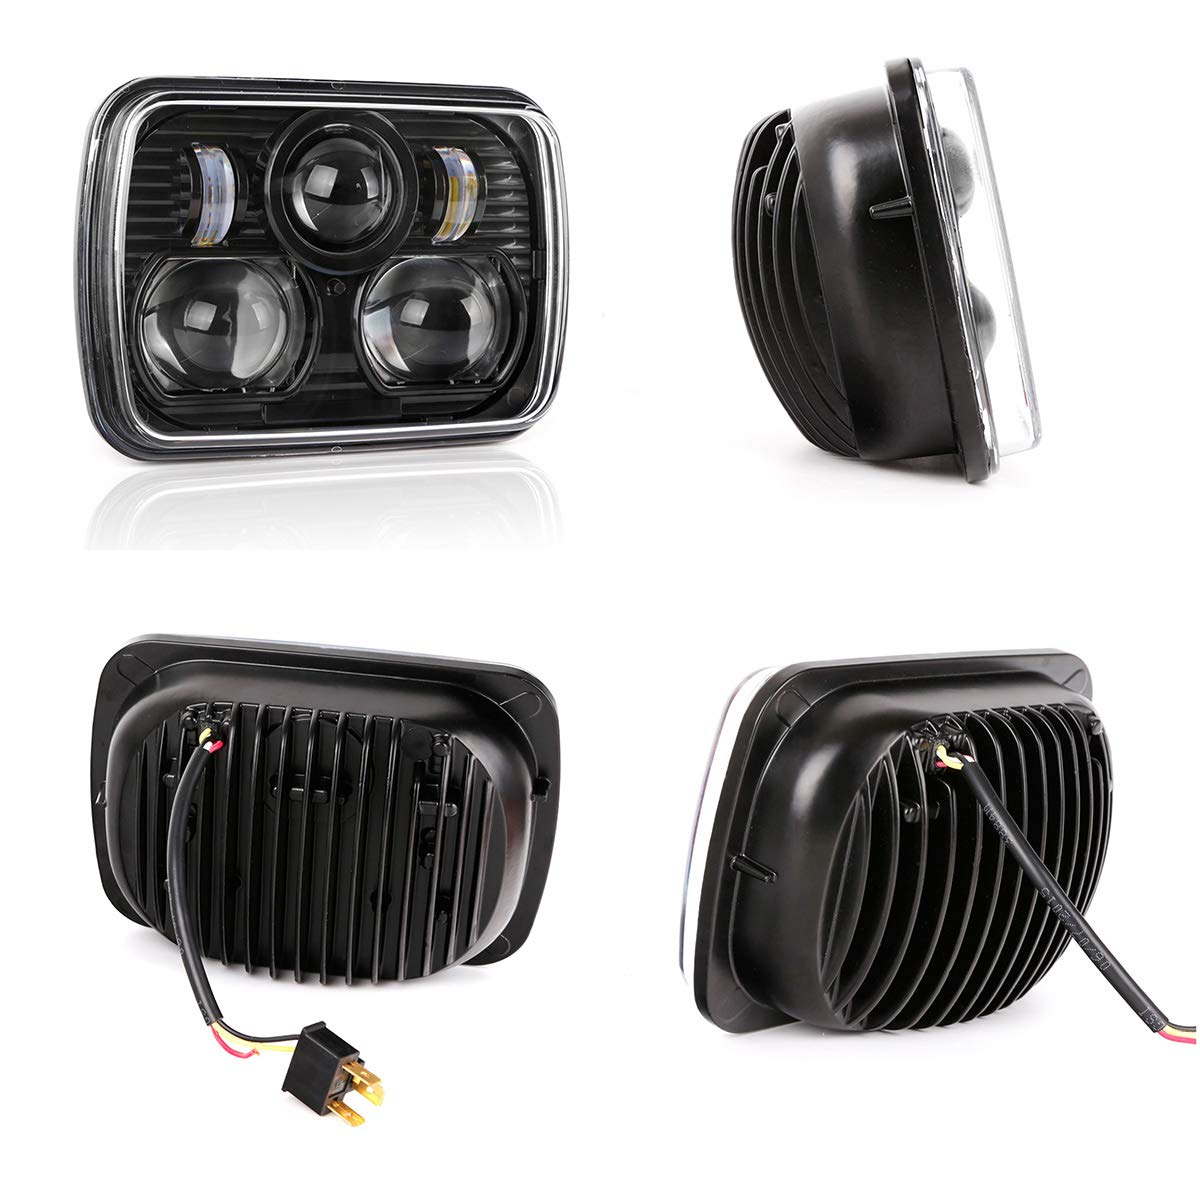 Black 5 X 7 Led Headlight Replacement For Jeep 1996 Cherokee Country Wiring Lights Xj Trucks Automotive